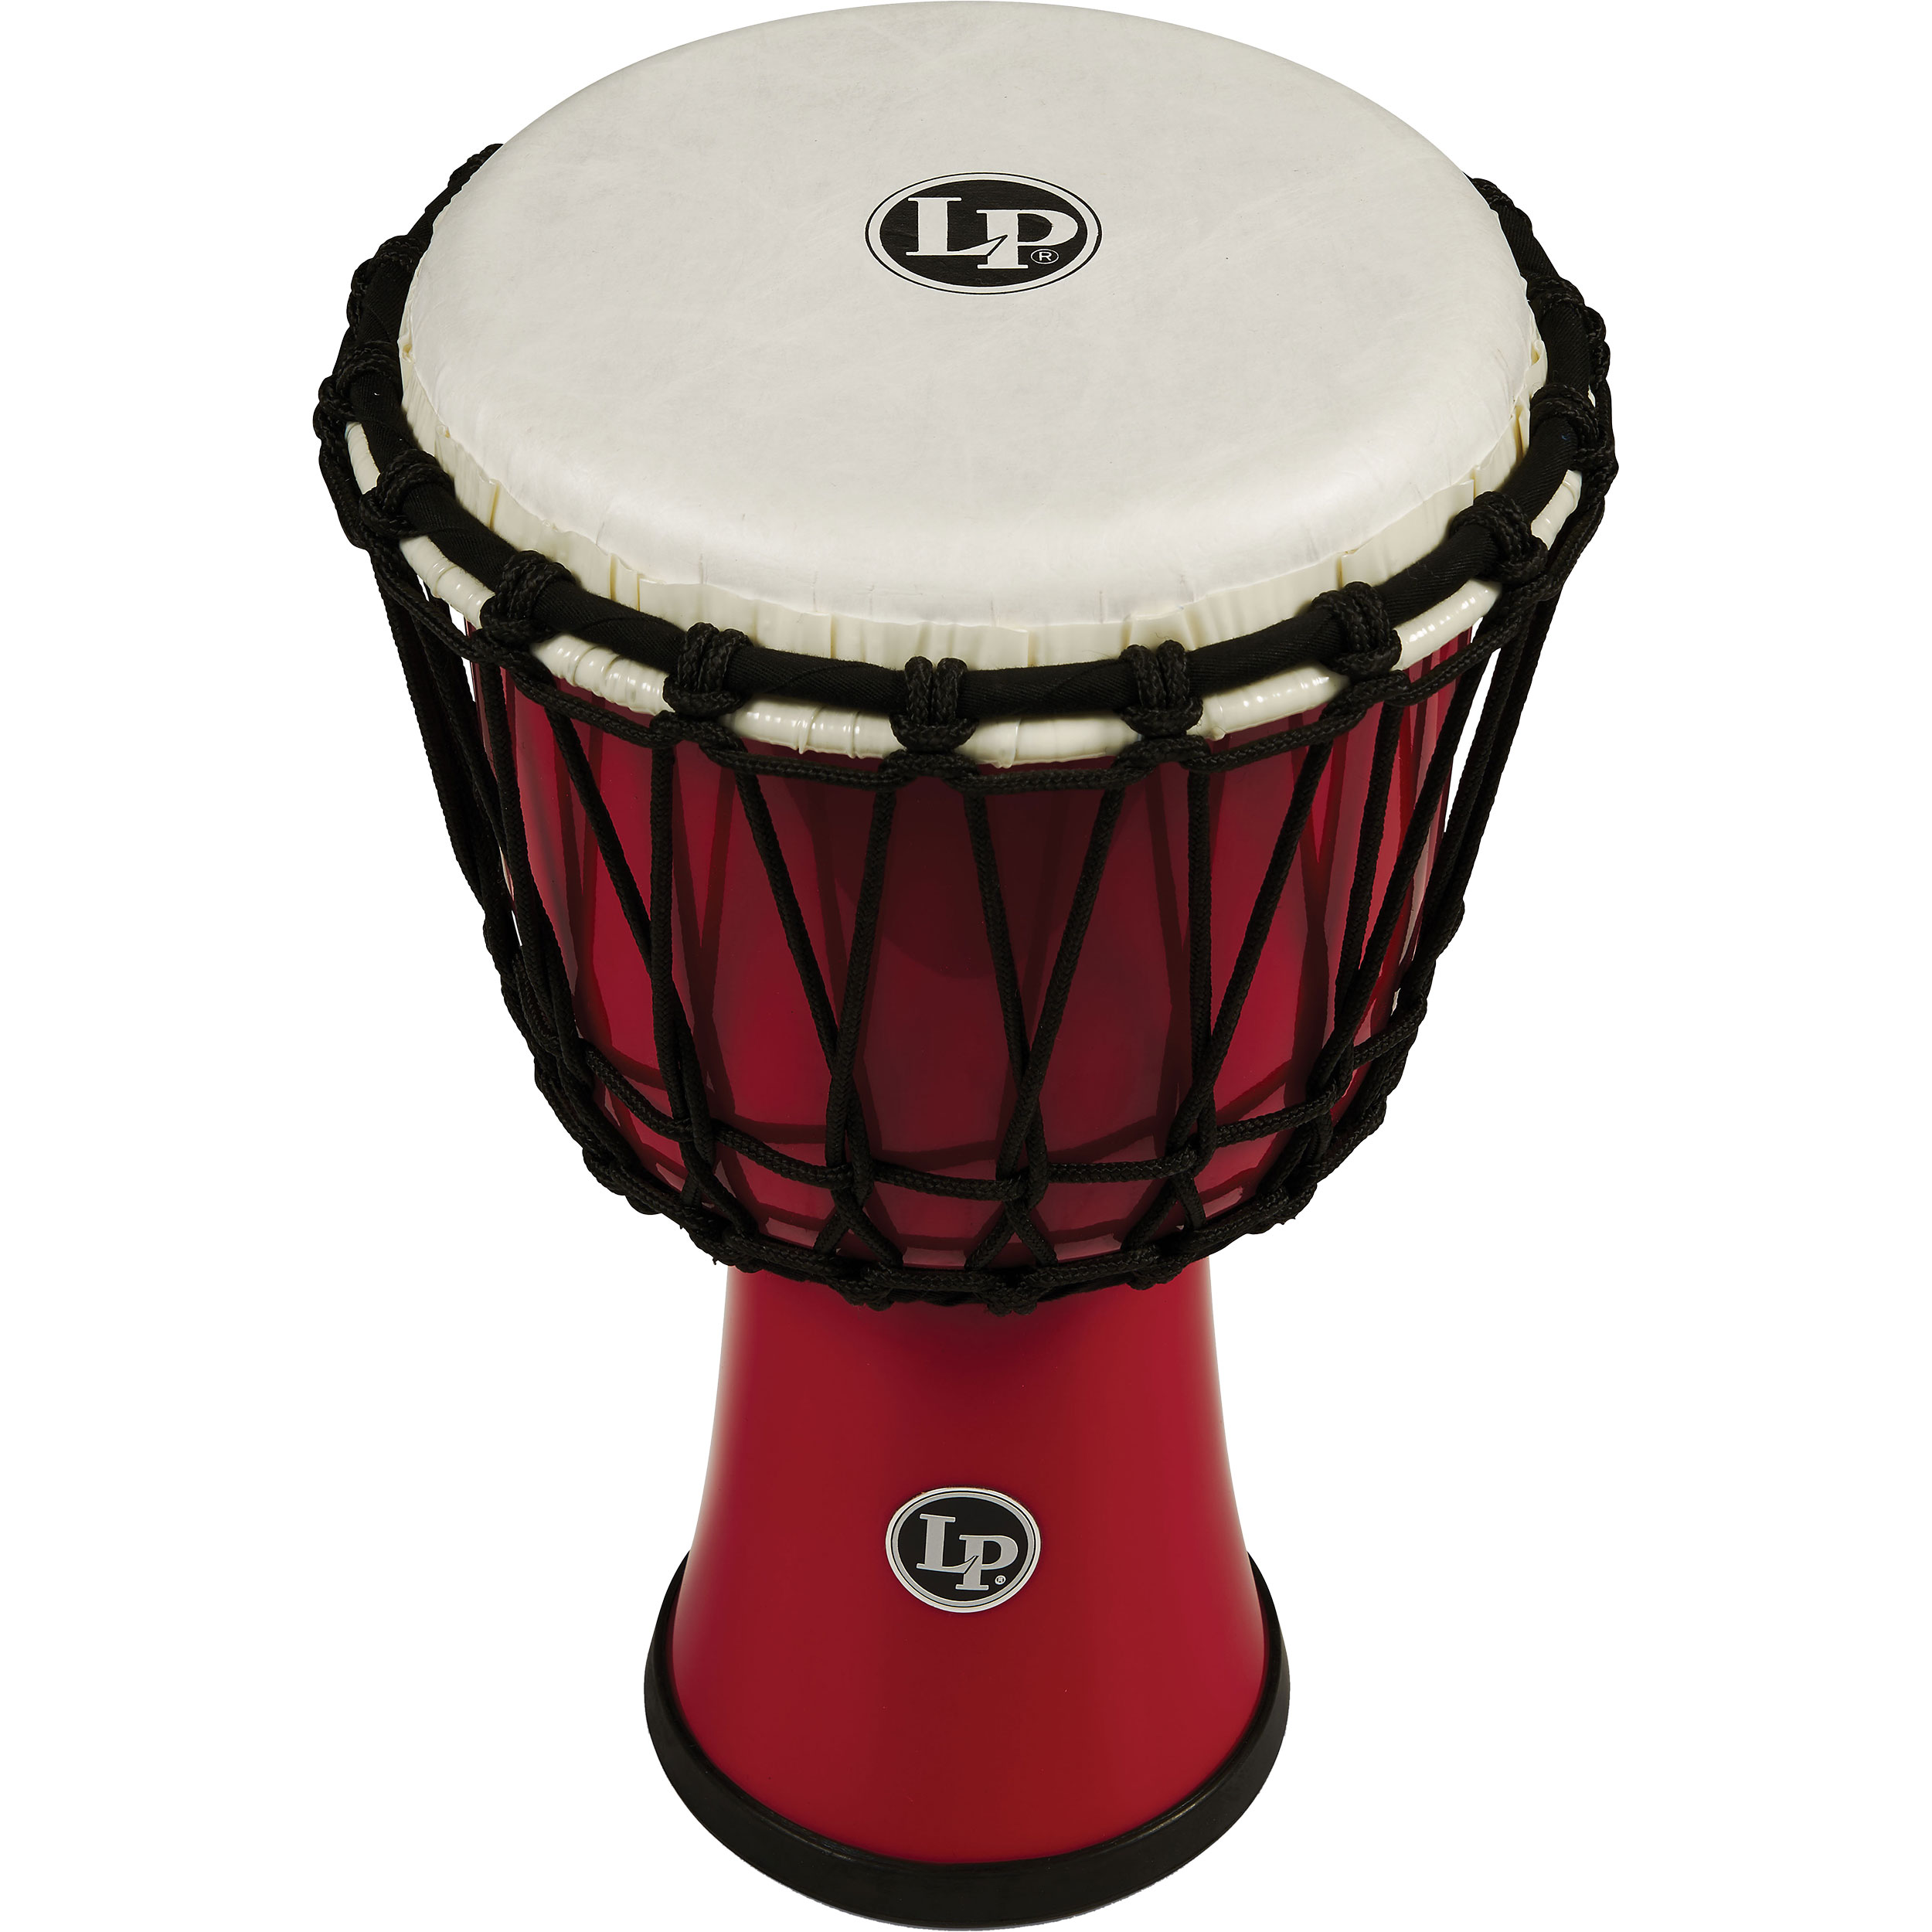 "LP 7"" Rope Tuned Circle Djembe in Red"